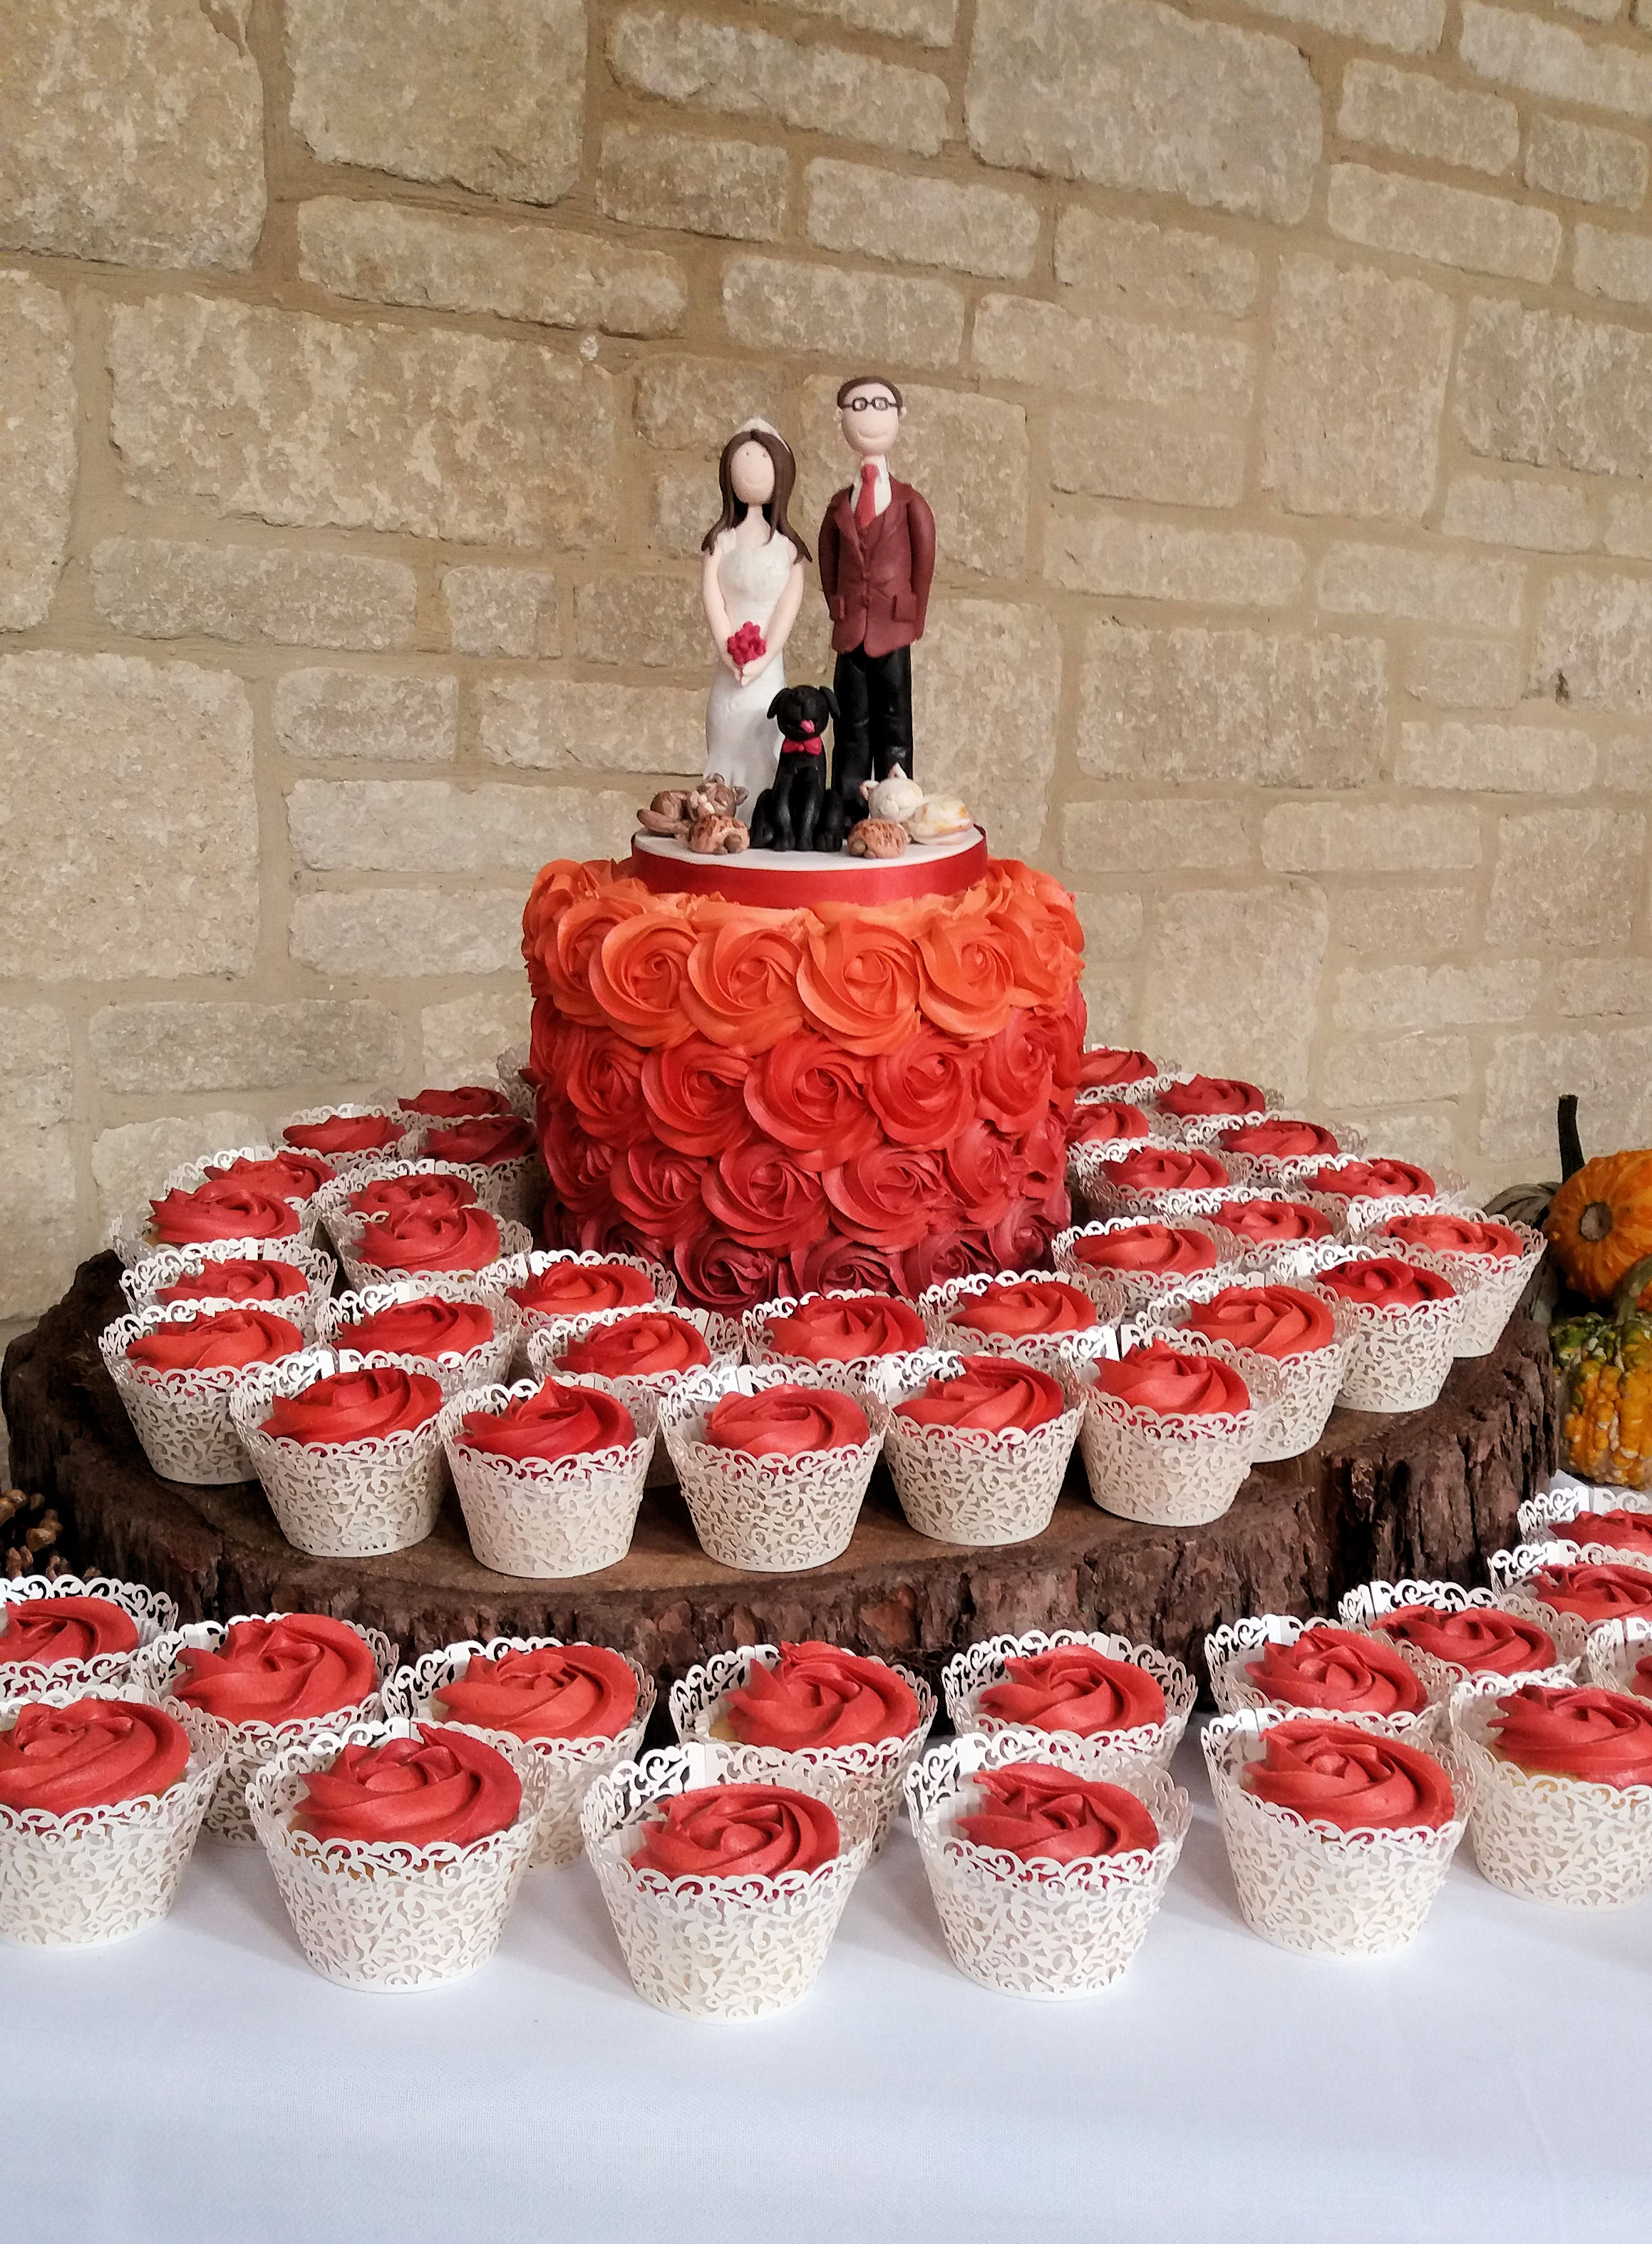 Ombre Rose Wedding Cake & Cupcakes1.jpg